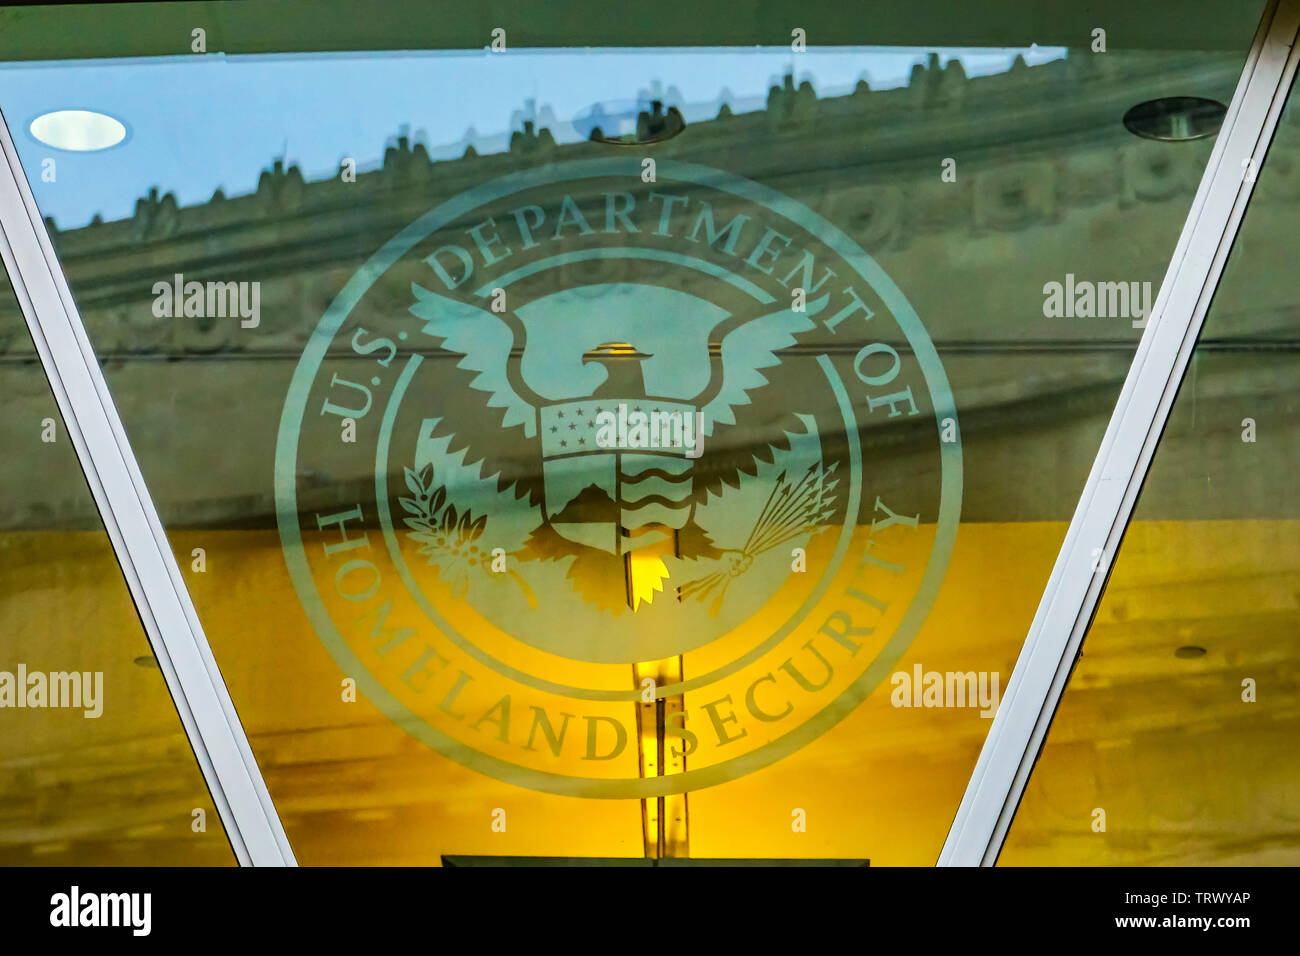 Department of Homeland Security US Department of Homeland Security Symbol Ronald Reagan International Trade Building Washington DC Stock Photo